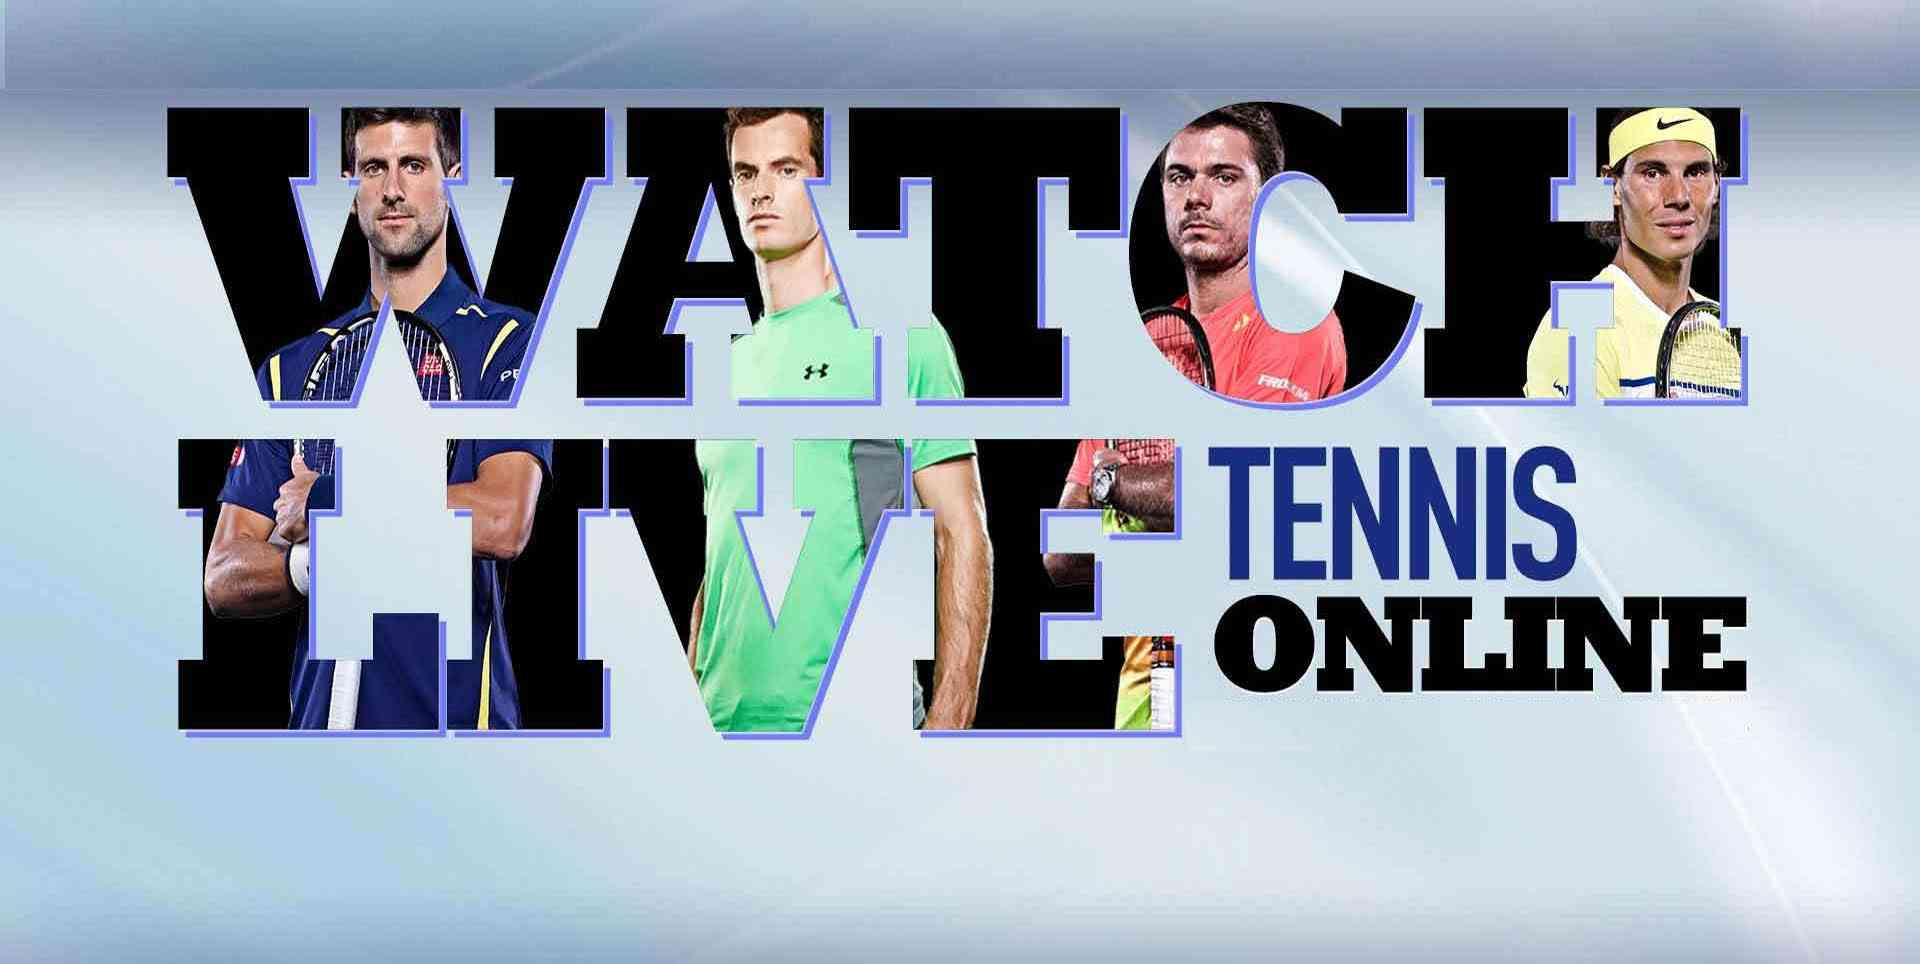 watch-t.-babos-|-k.-mladenovic-vs-s.-errani-|-r.-vinci-2014-final-online